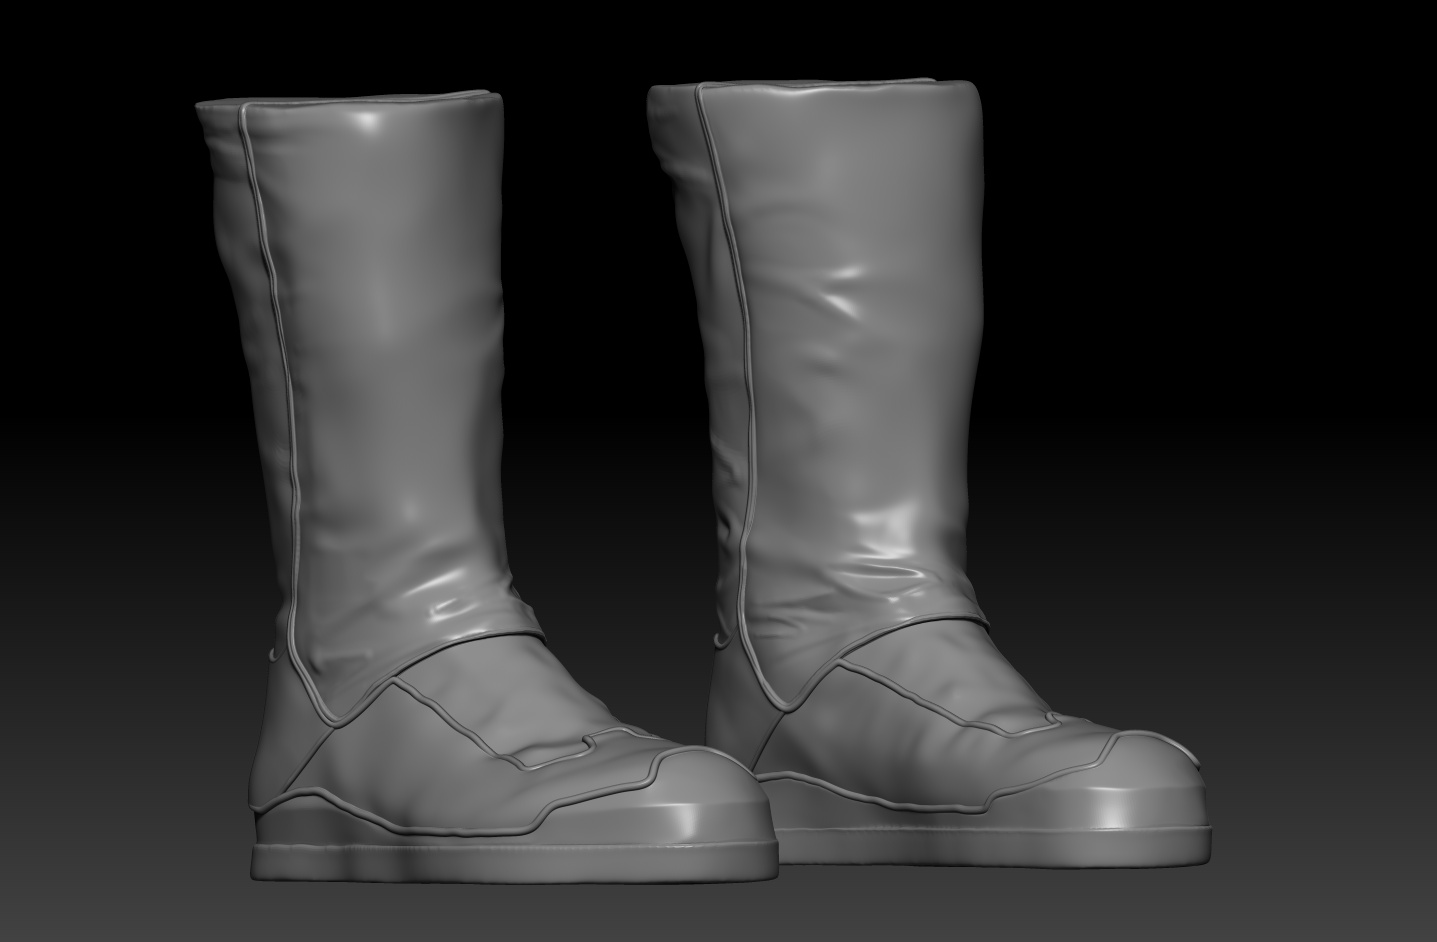 zbrush sculpted craftable boots.jpg